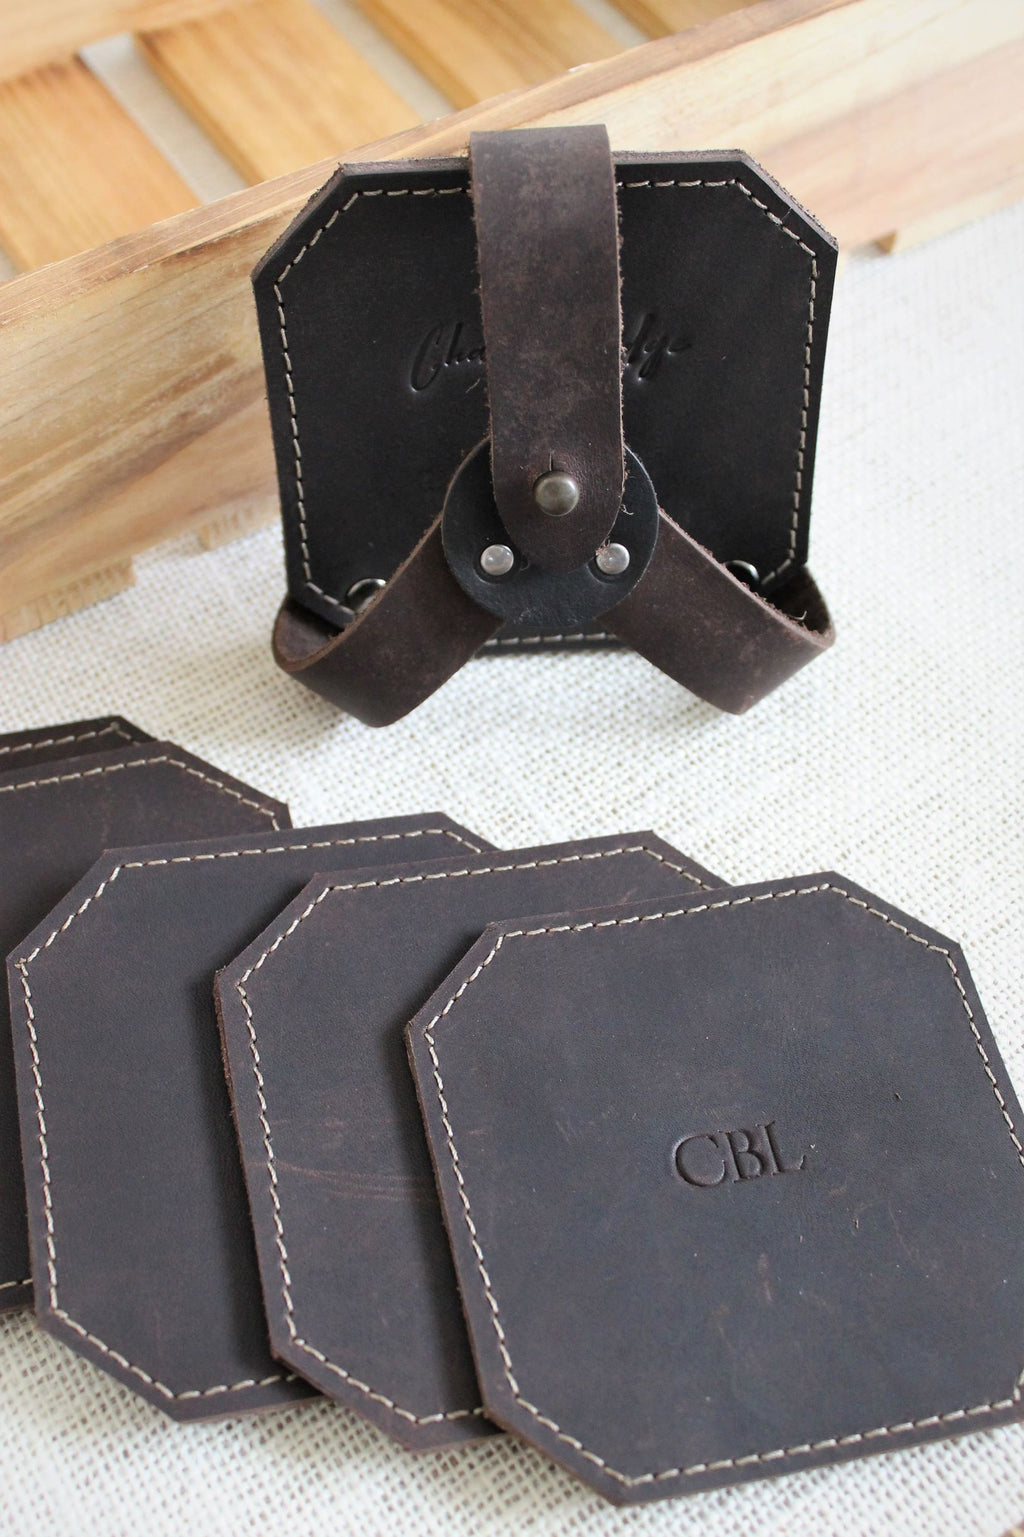 Leather store: Monogram Personalized Leather Coaster Set of 6 with stand